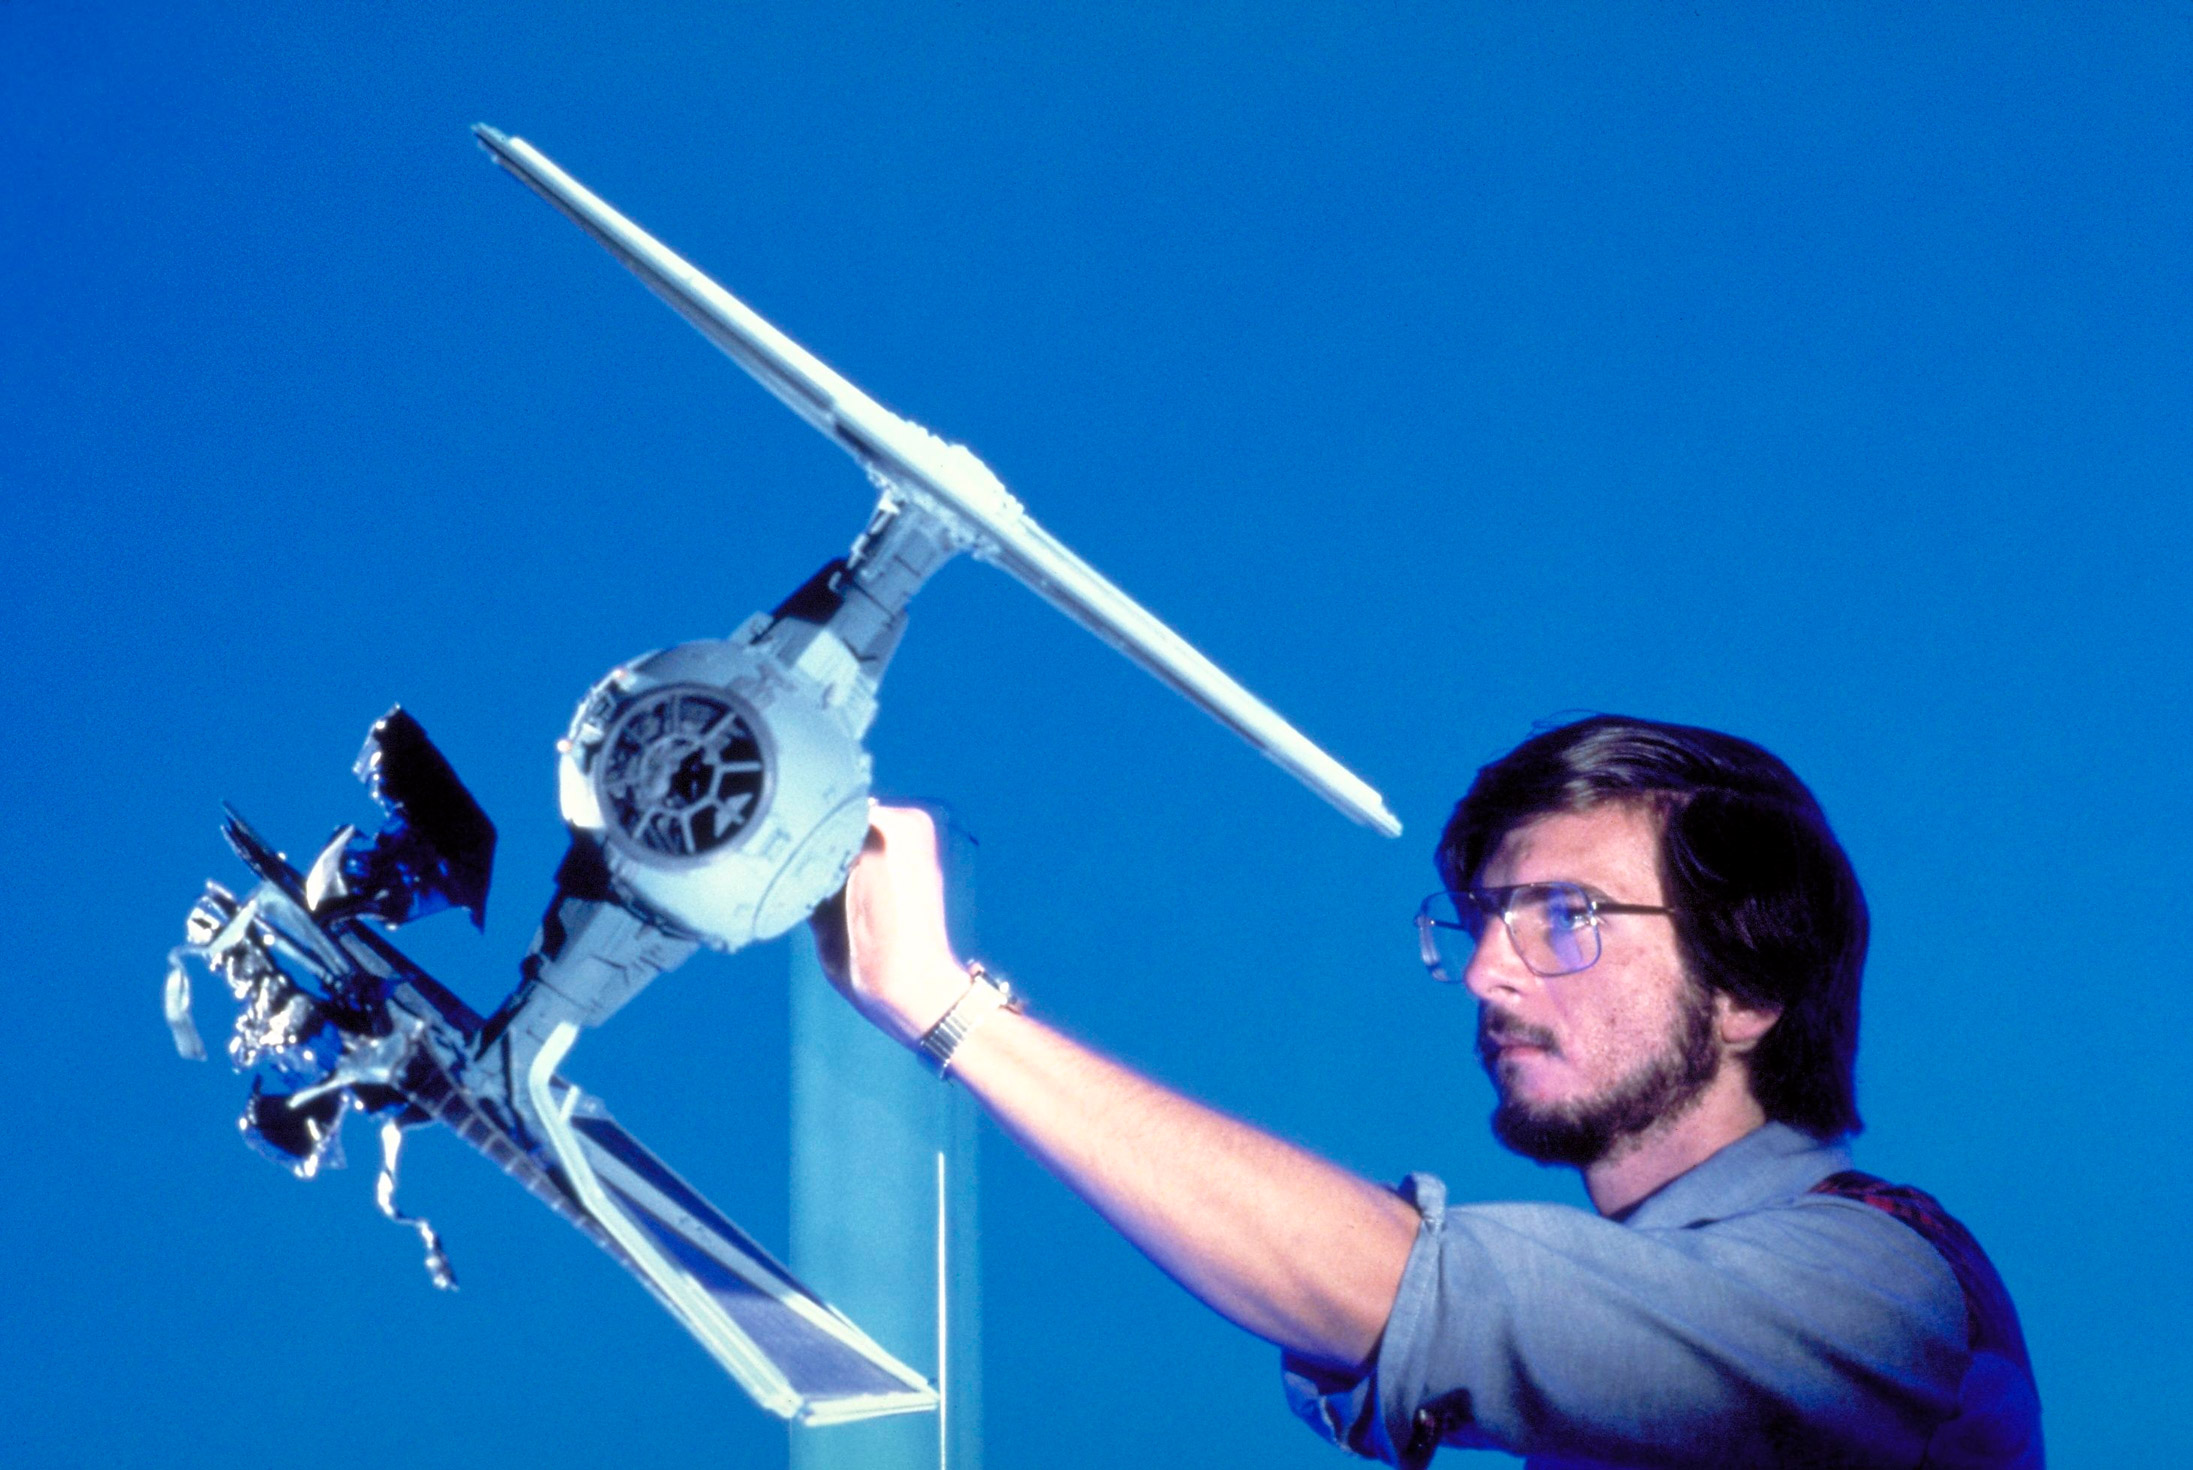 Ken Ralston adjusts a damaged TIE fighter on set (image: LucasFilm).